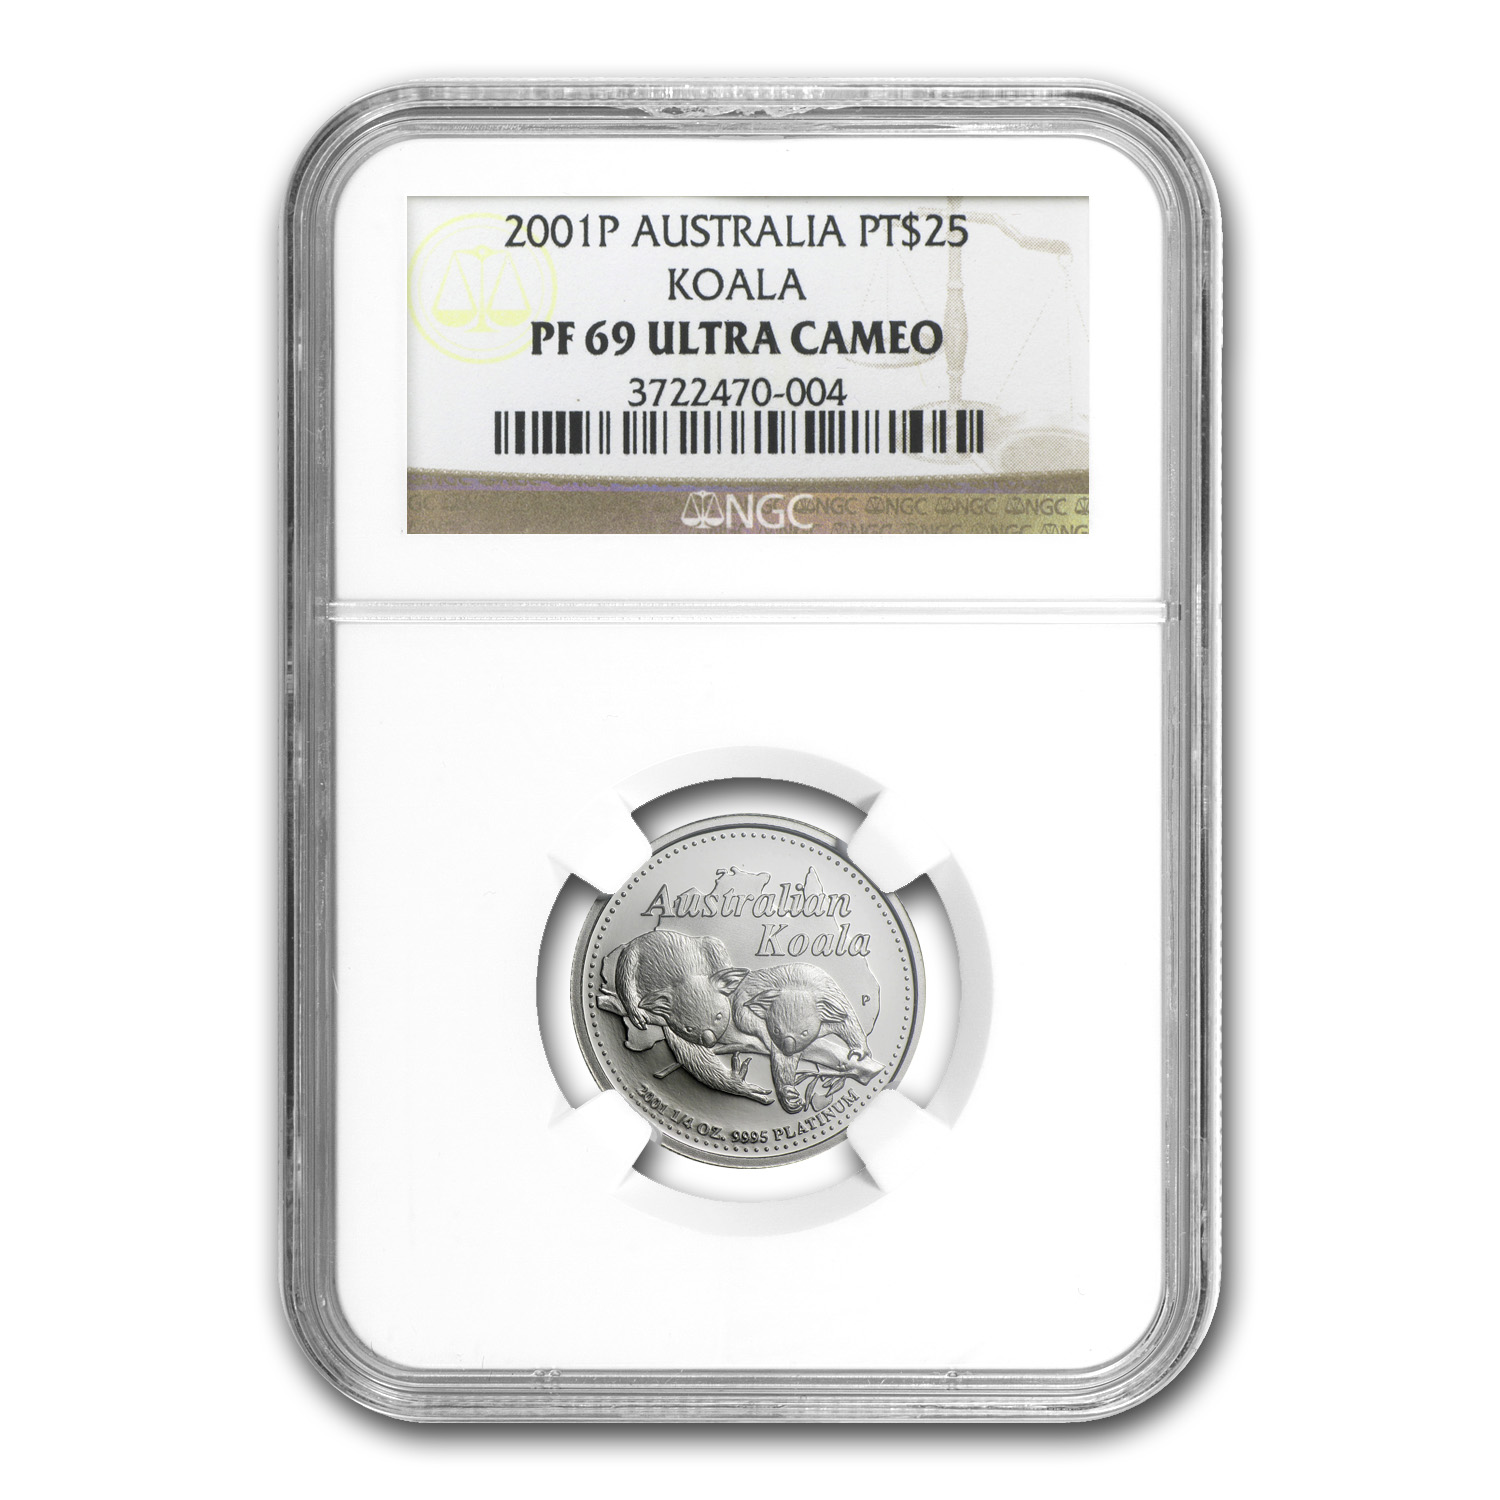 2001 Australia 1/4 oz Proof Platinum Koala PF-69 NGC